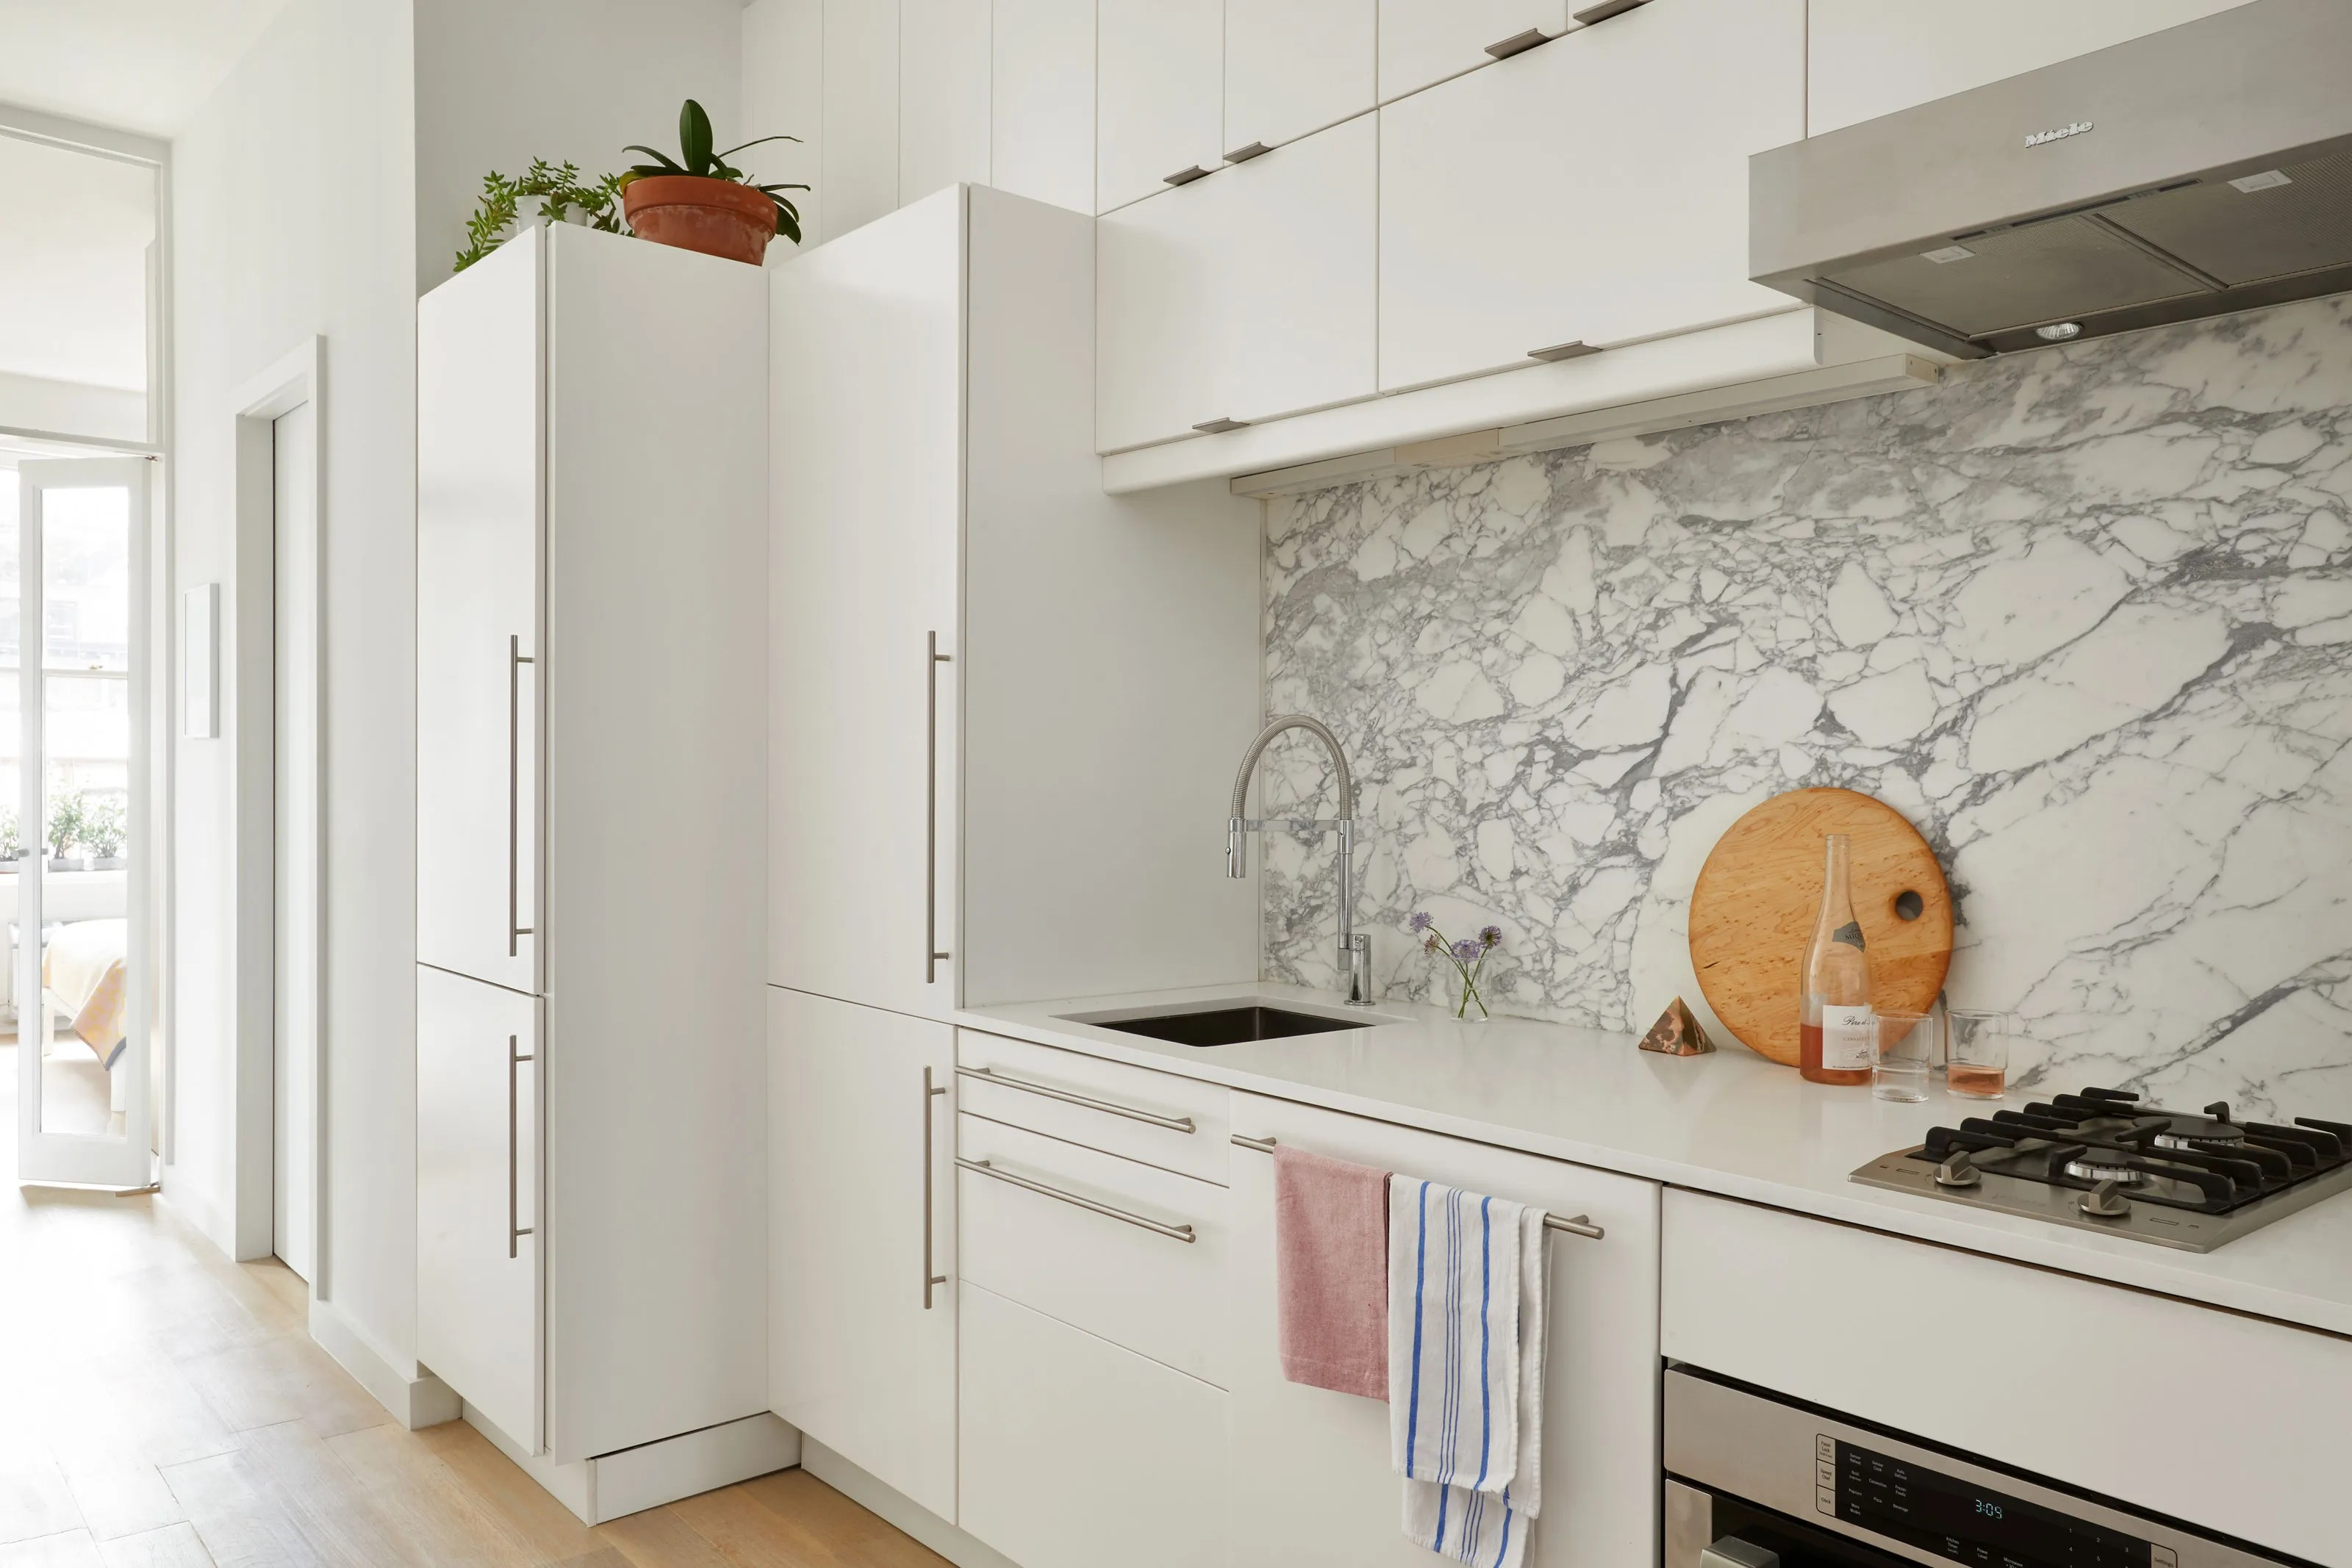 Kitchen Design Courses Near Me Ikea Kitchen Hacks So Your Kitchen Doesn 39t Look Like